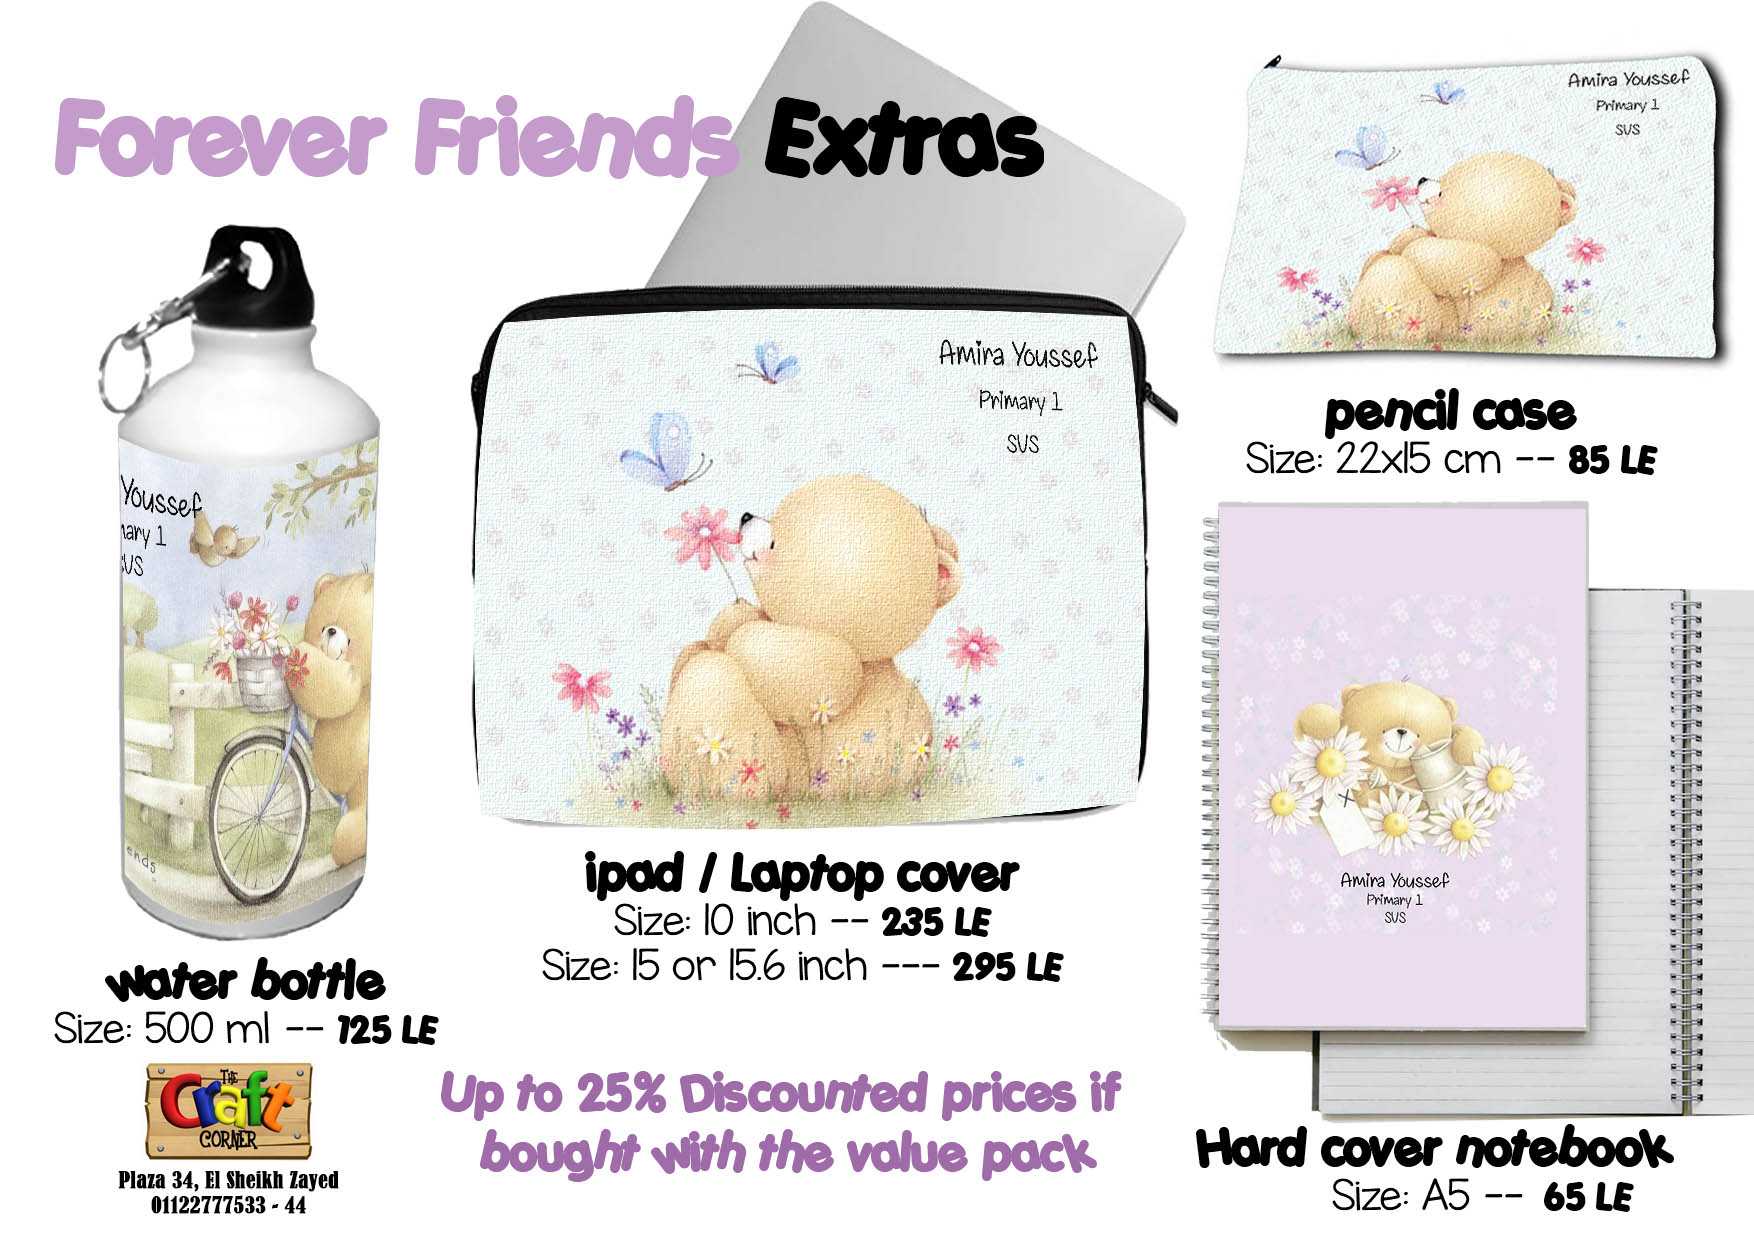 Forever friends Extras